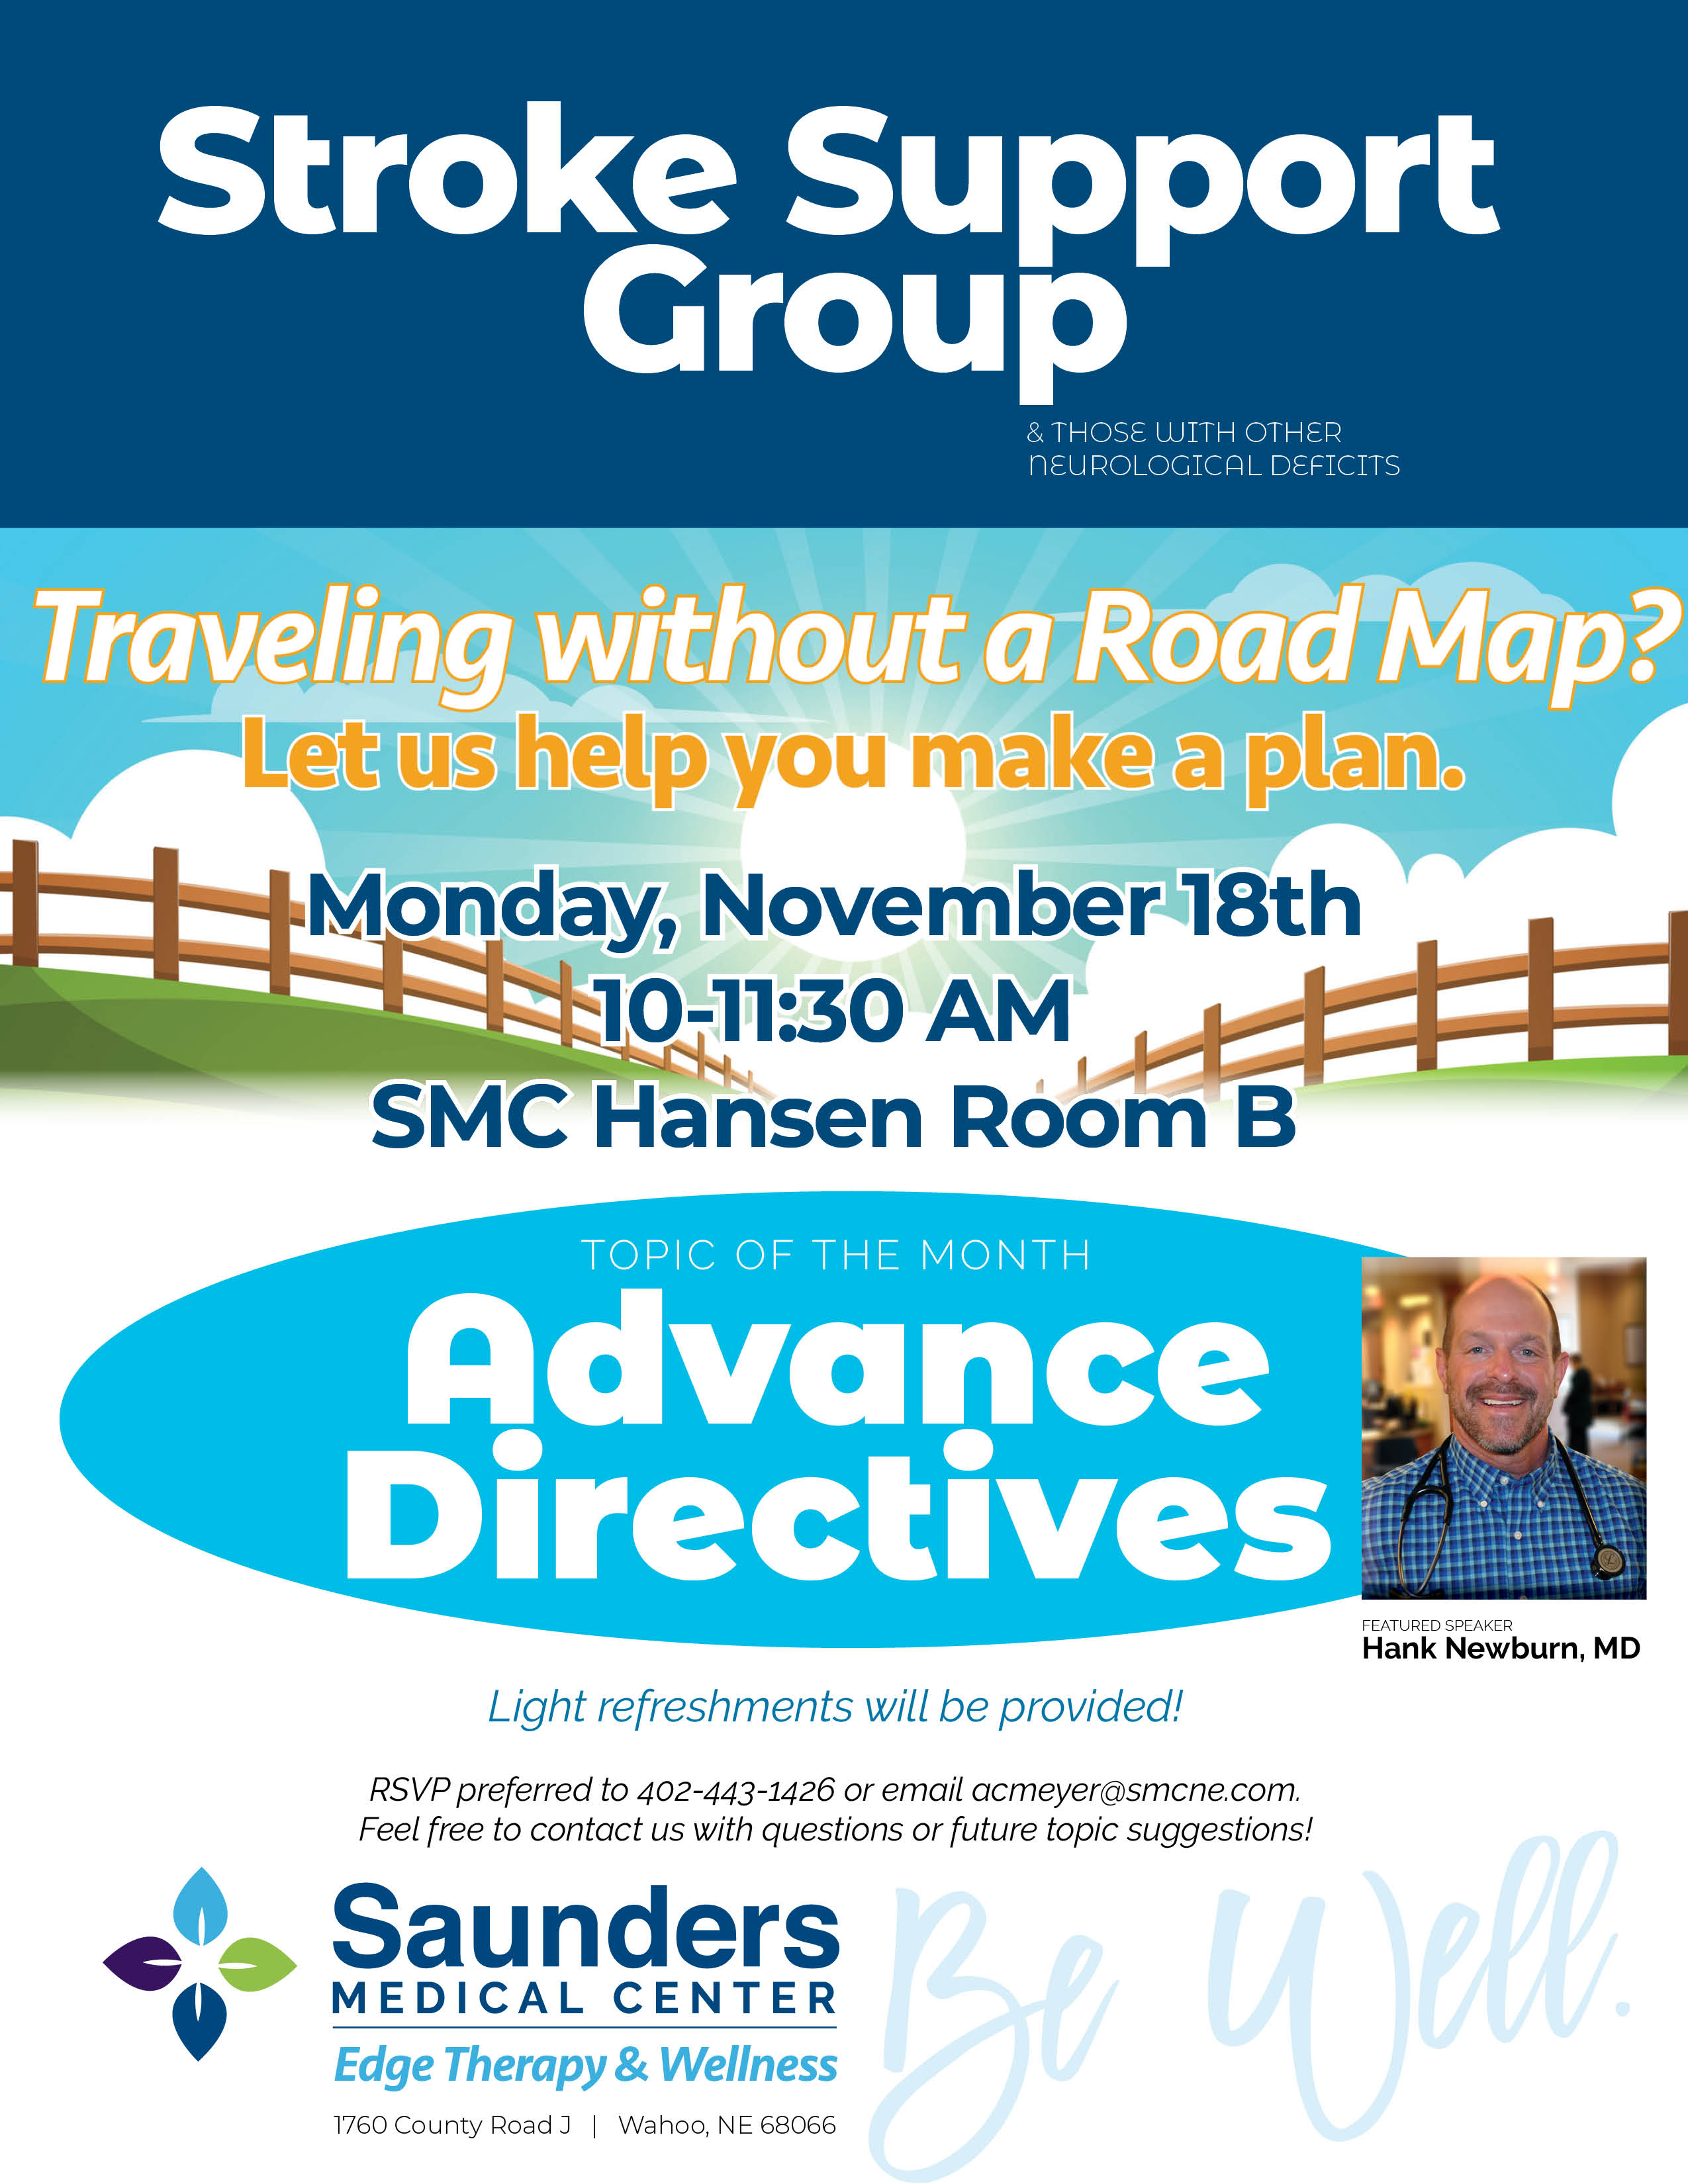 Stroke Support Group   Advance Directives Featuring Dr. Newburn